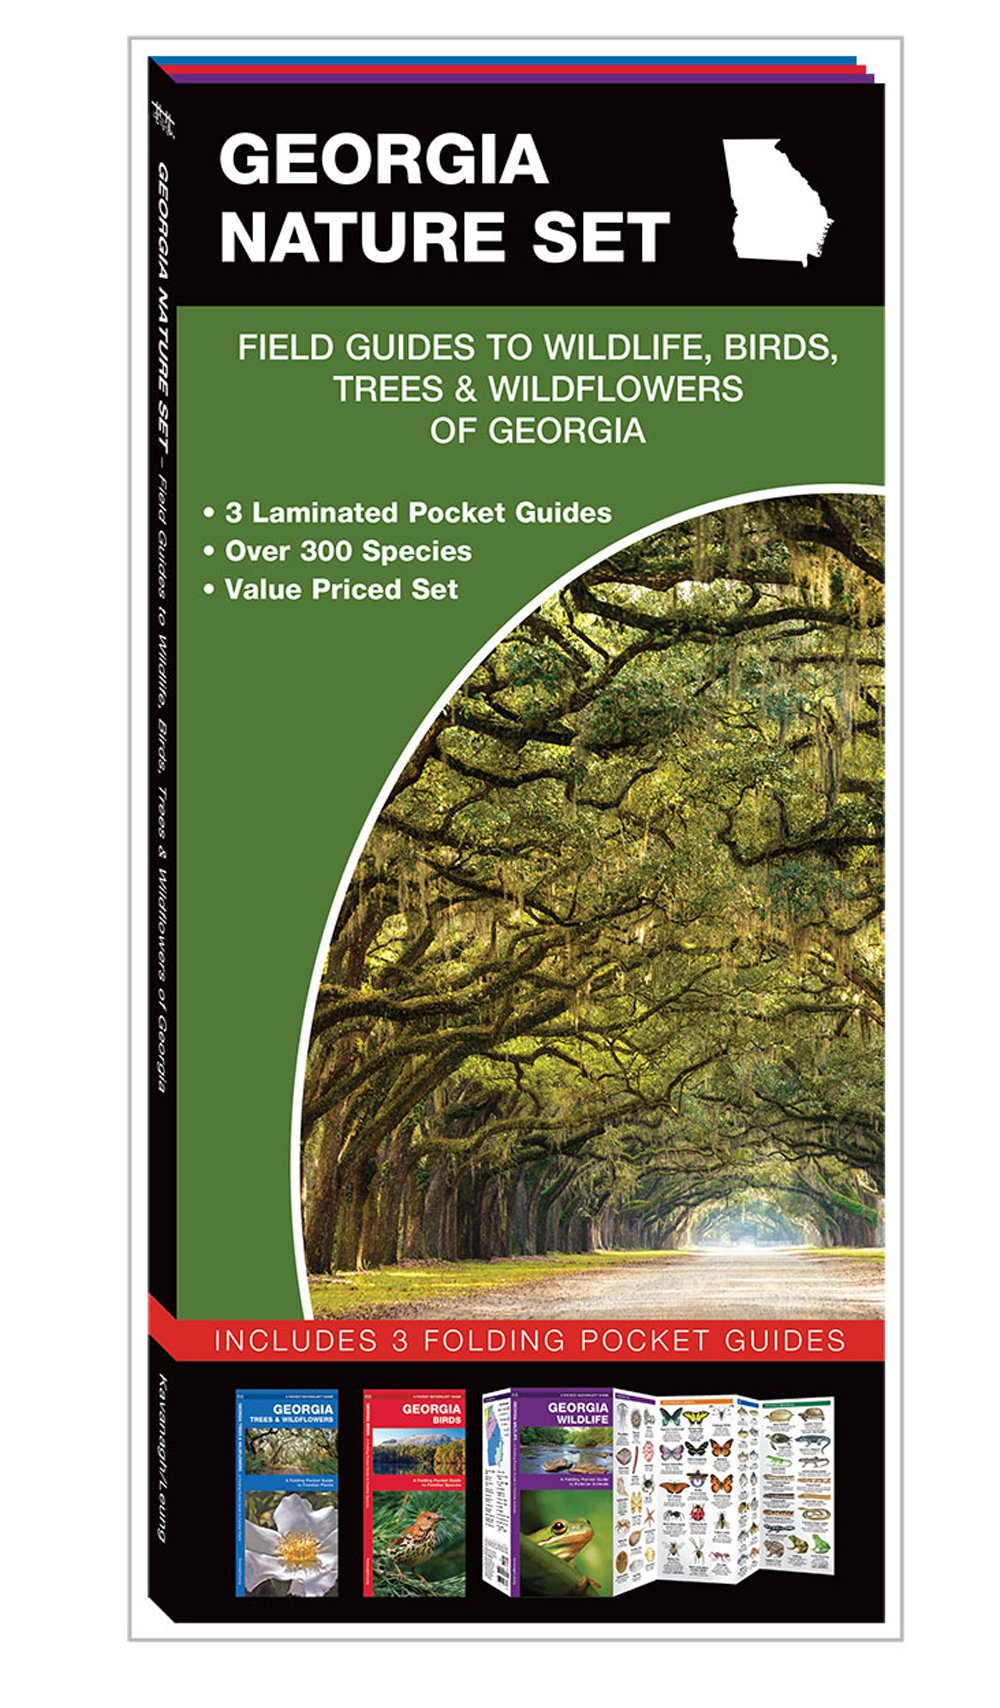 Georgia Nature Set: Field Guides to Wildlife, Birds, Trees & Wildflowers (Pocket Naturalist® Guide Set)